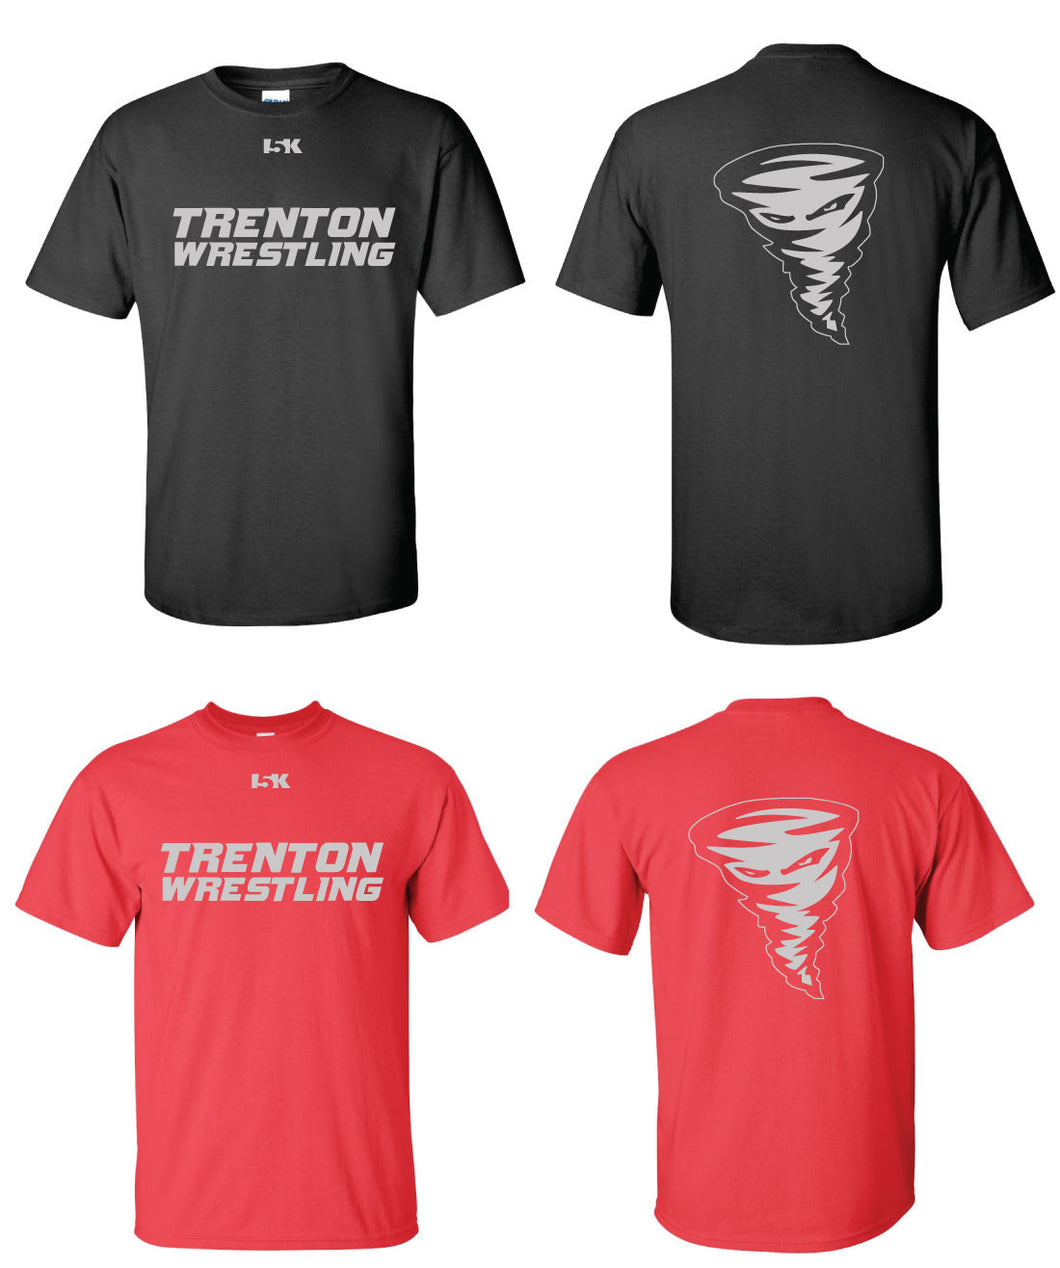 Trenton Wrestling Short Sleeve Tee - Cotton - 5KounT